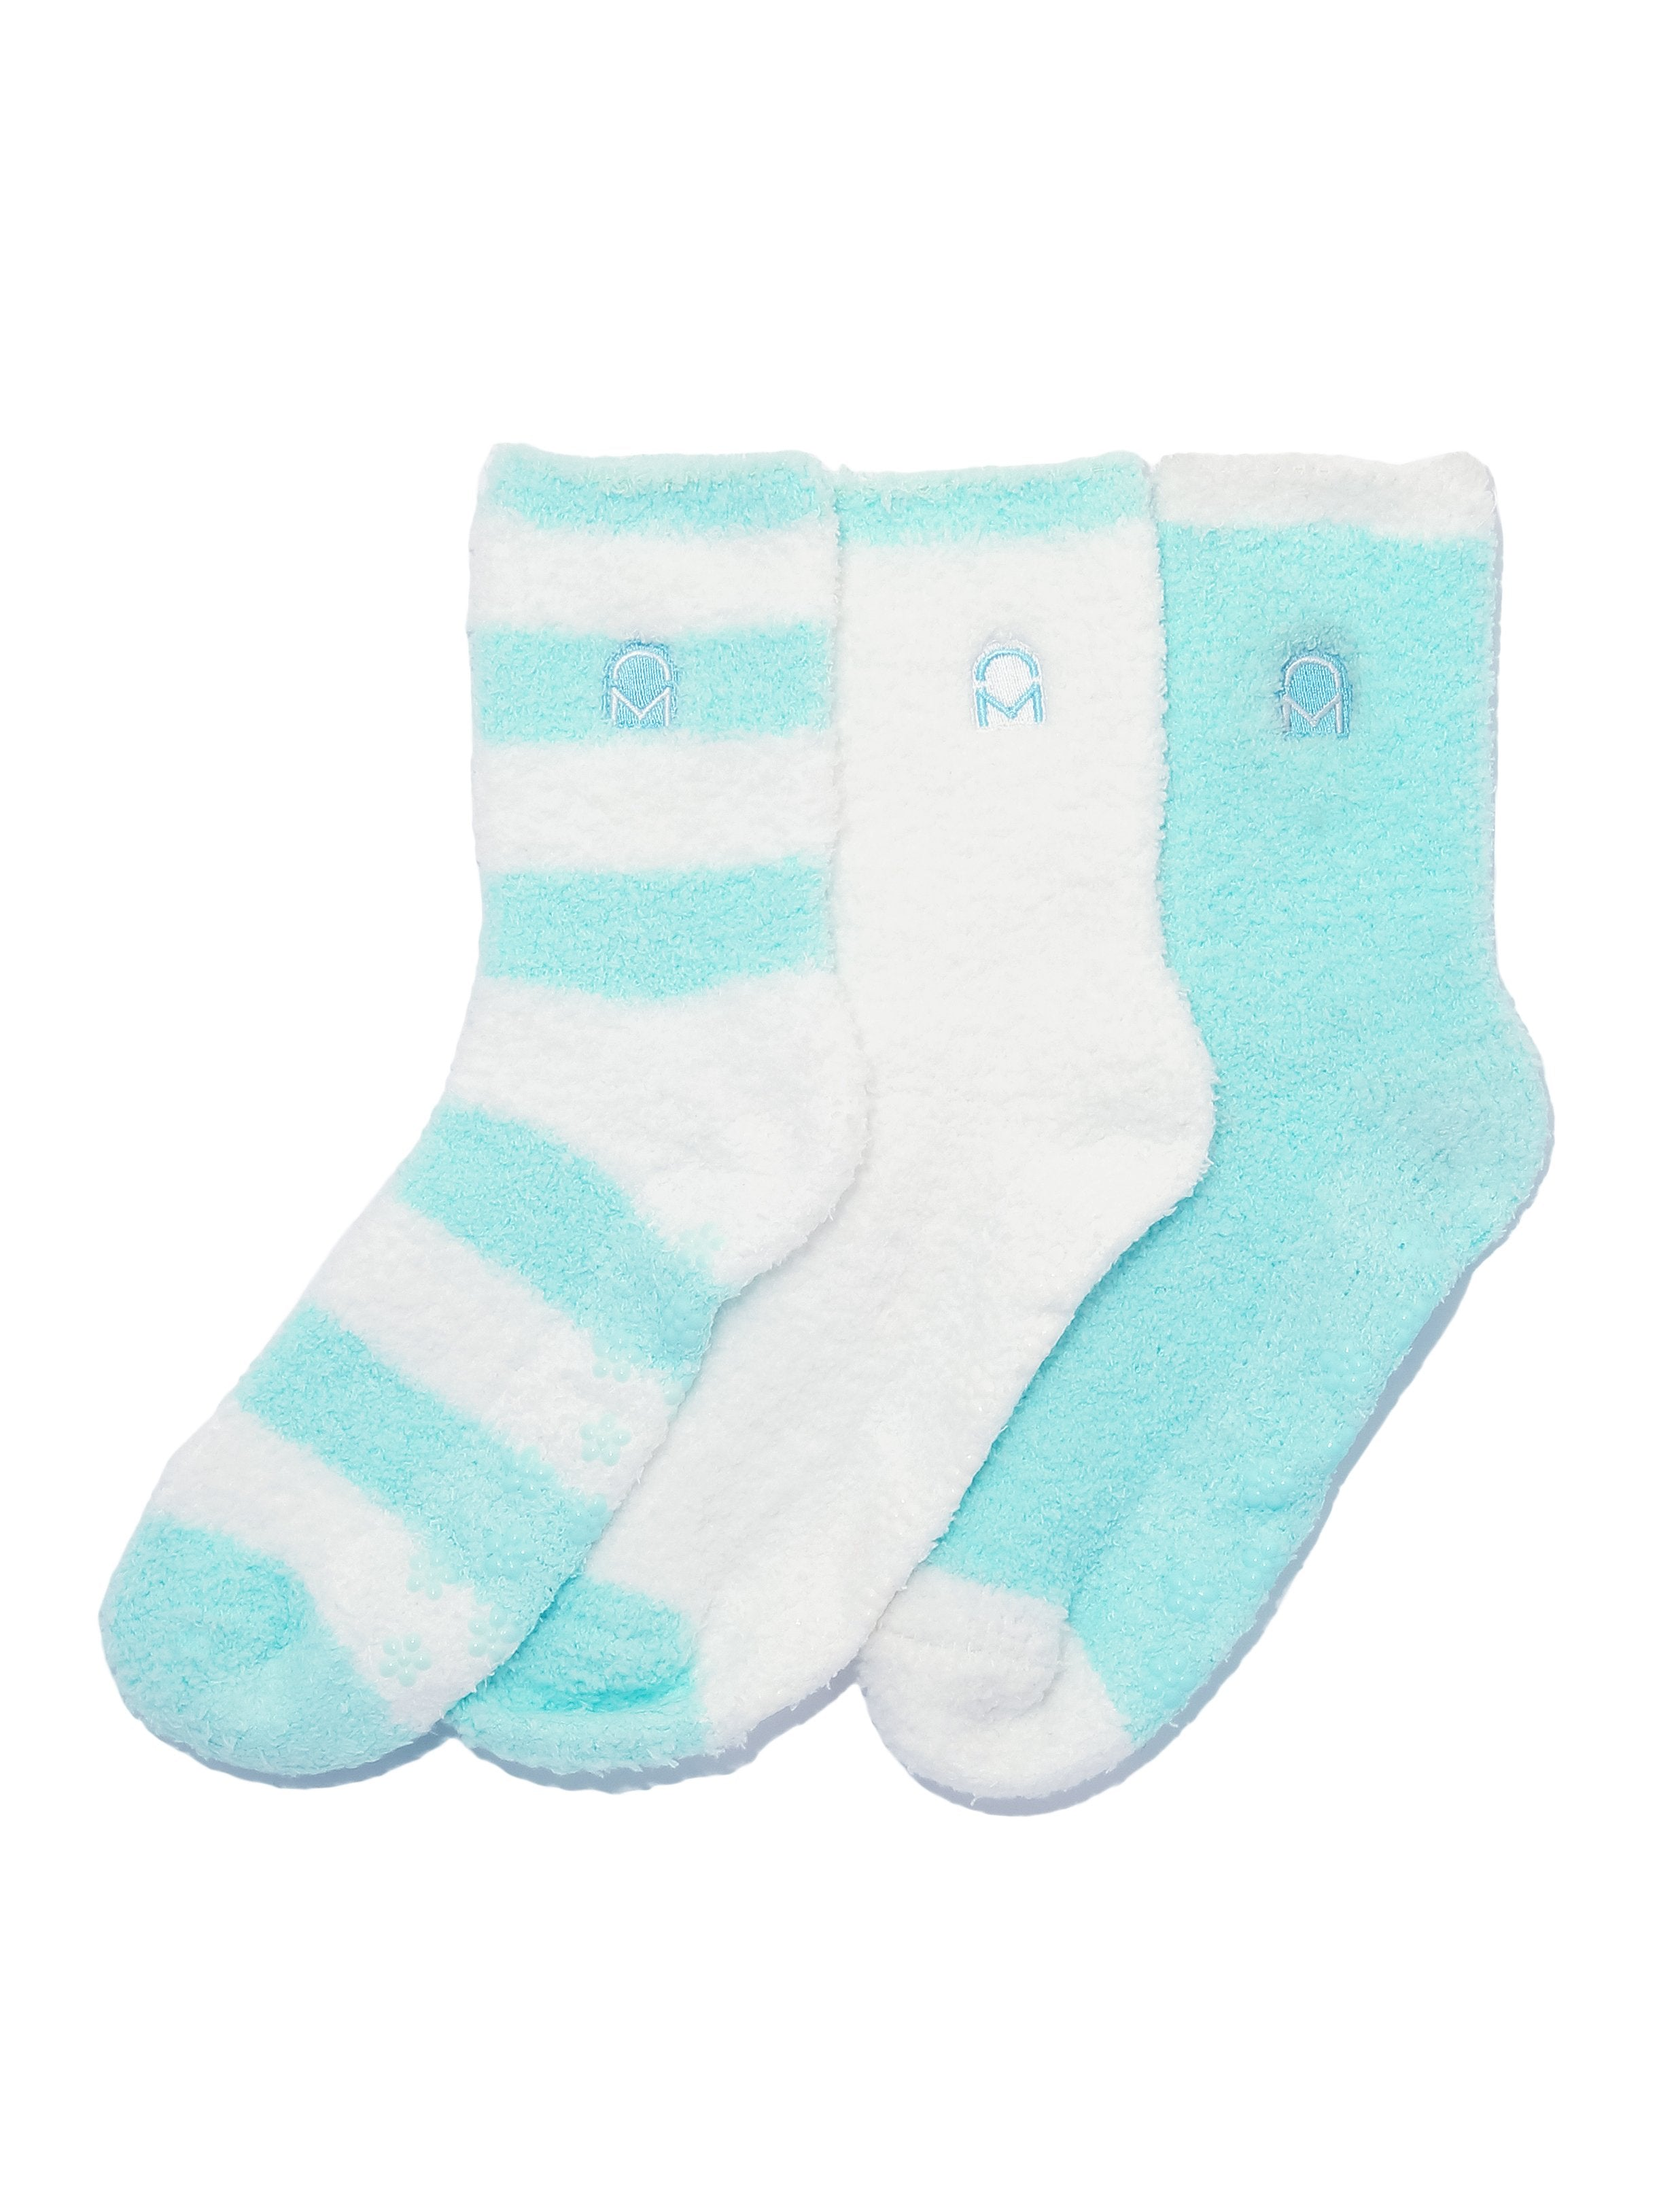 Women's (3 Pairs) Soft Anti-Skid Fuzzy Winter Crew Socks - Set D13